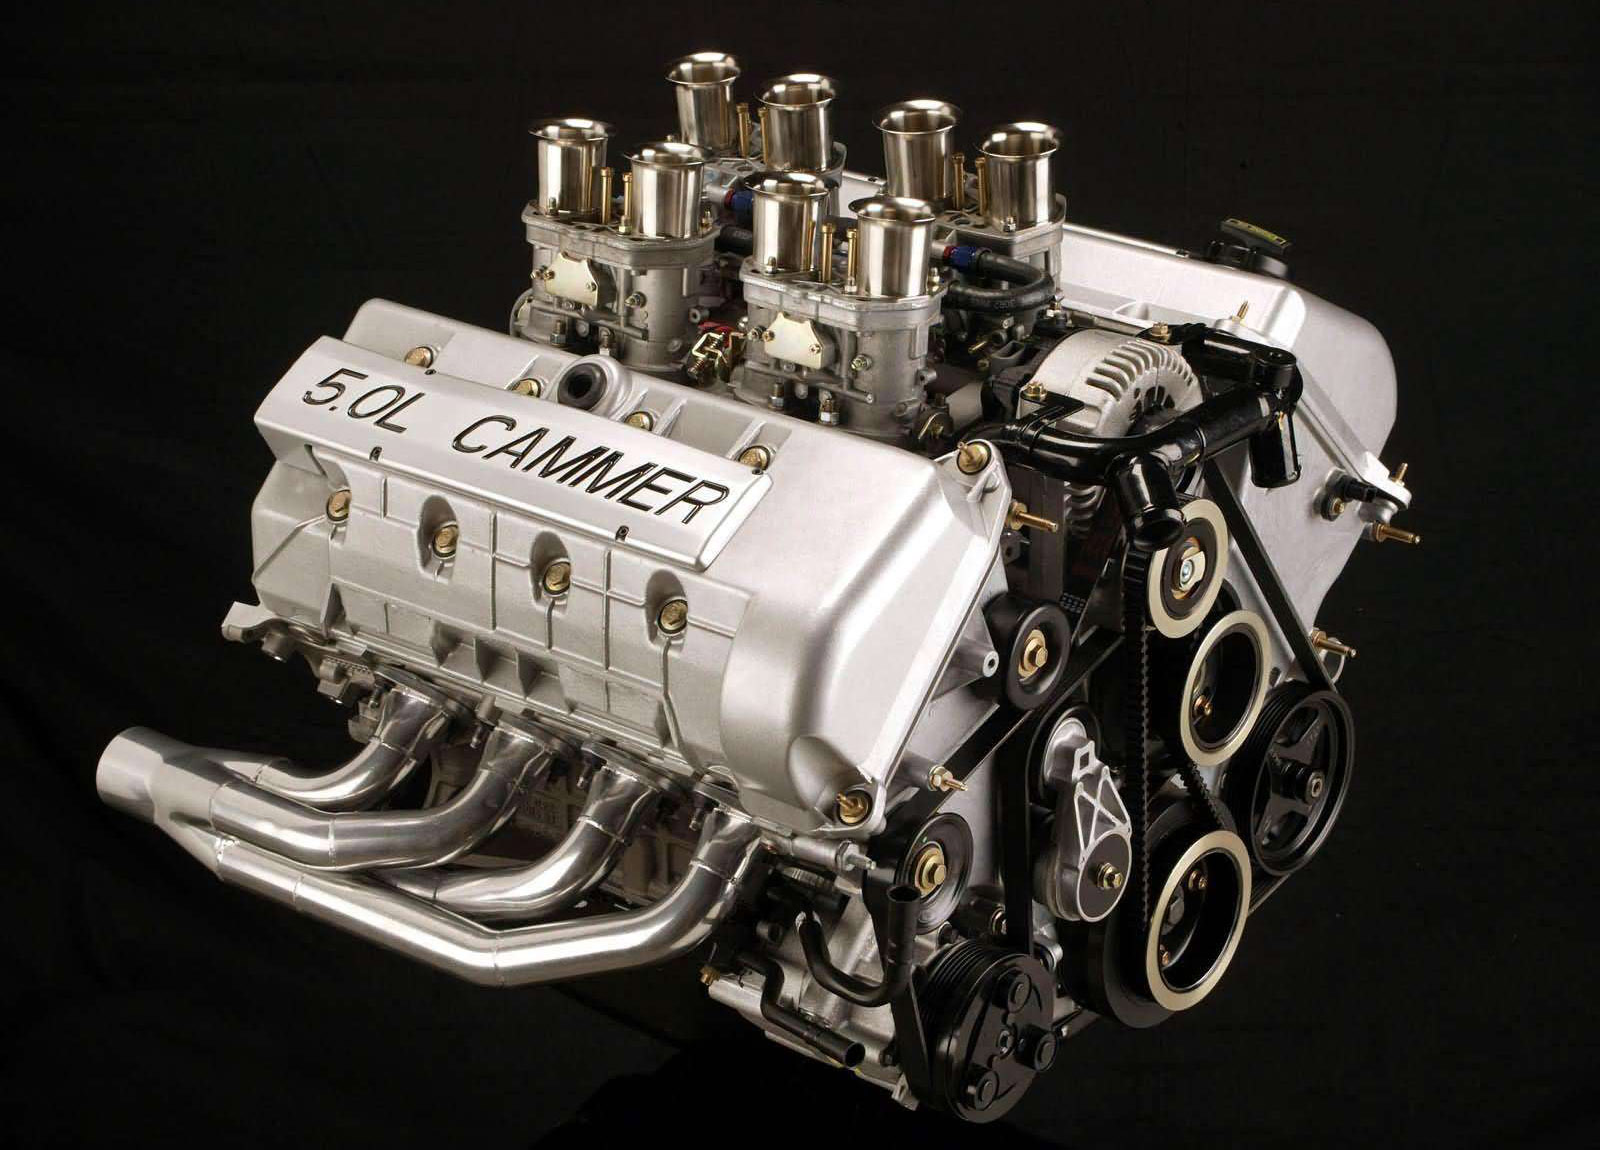 1965 Ford Mustang Fastback Cammer Engine - HD Pictures ...